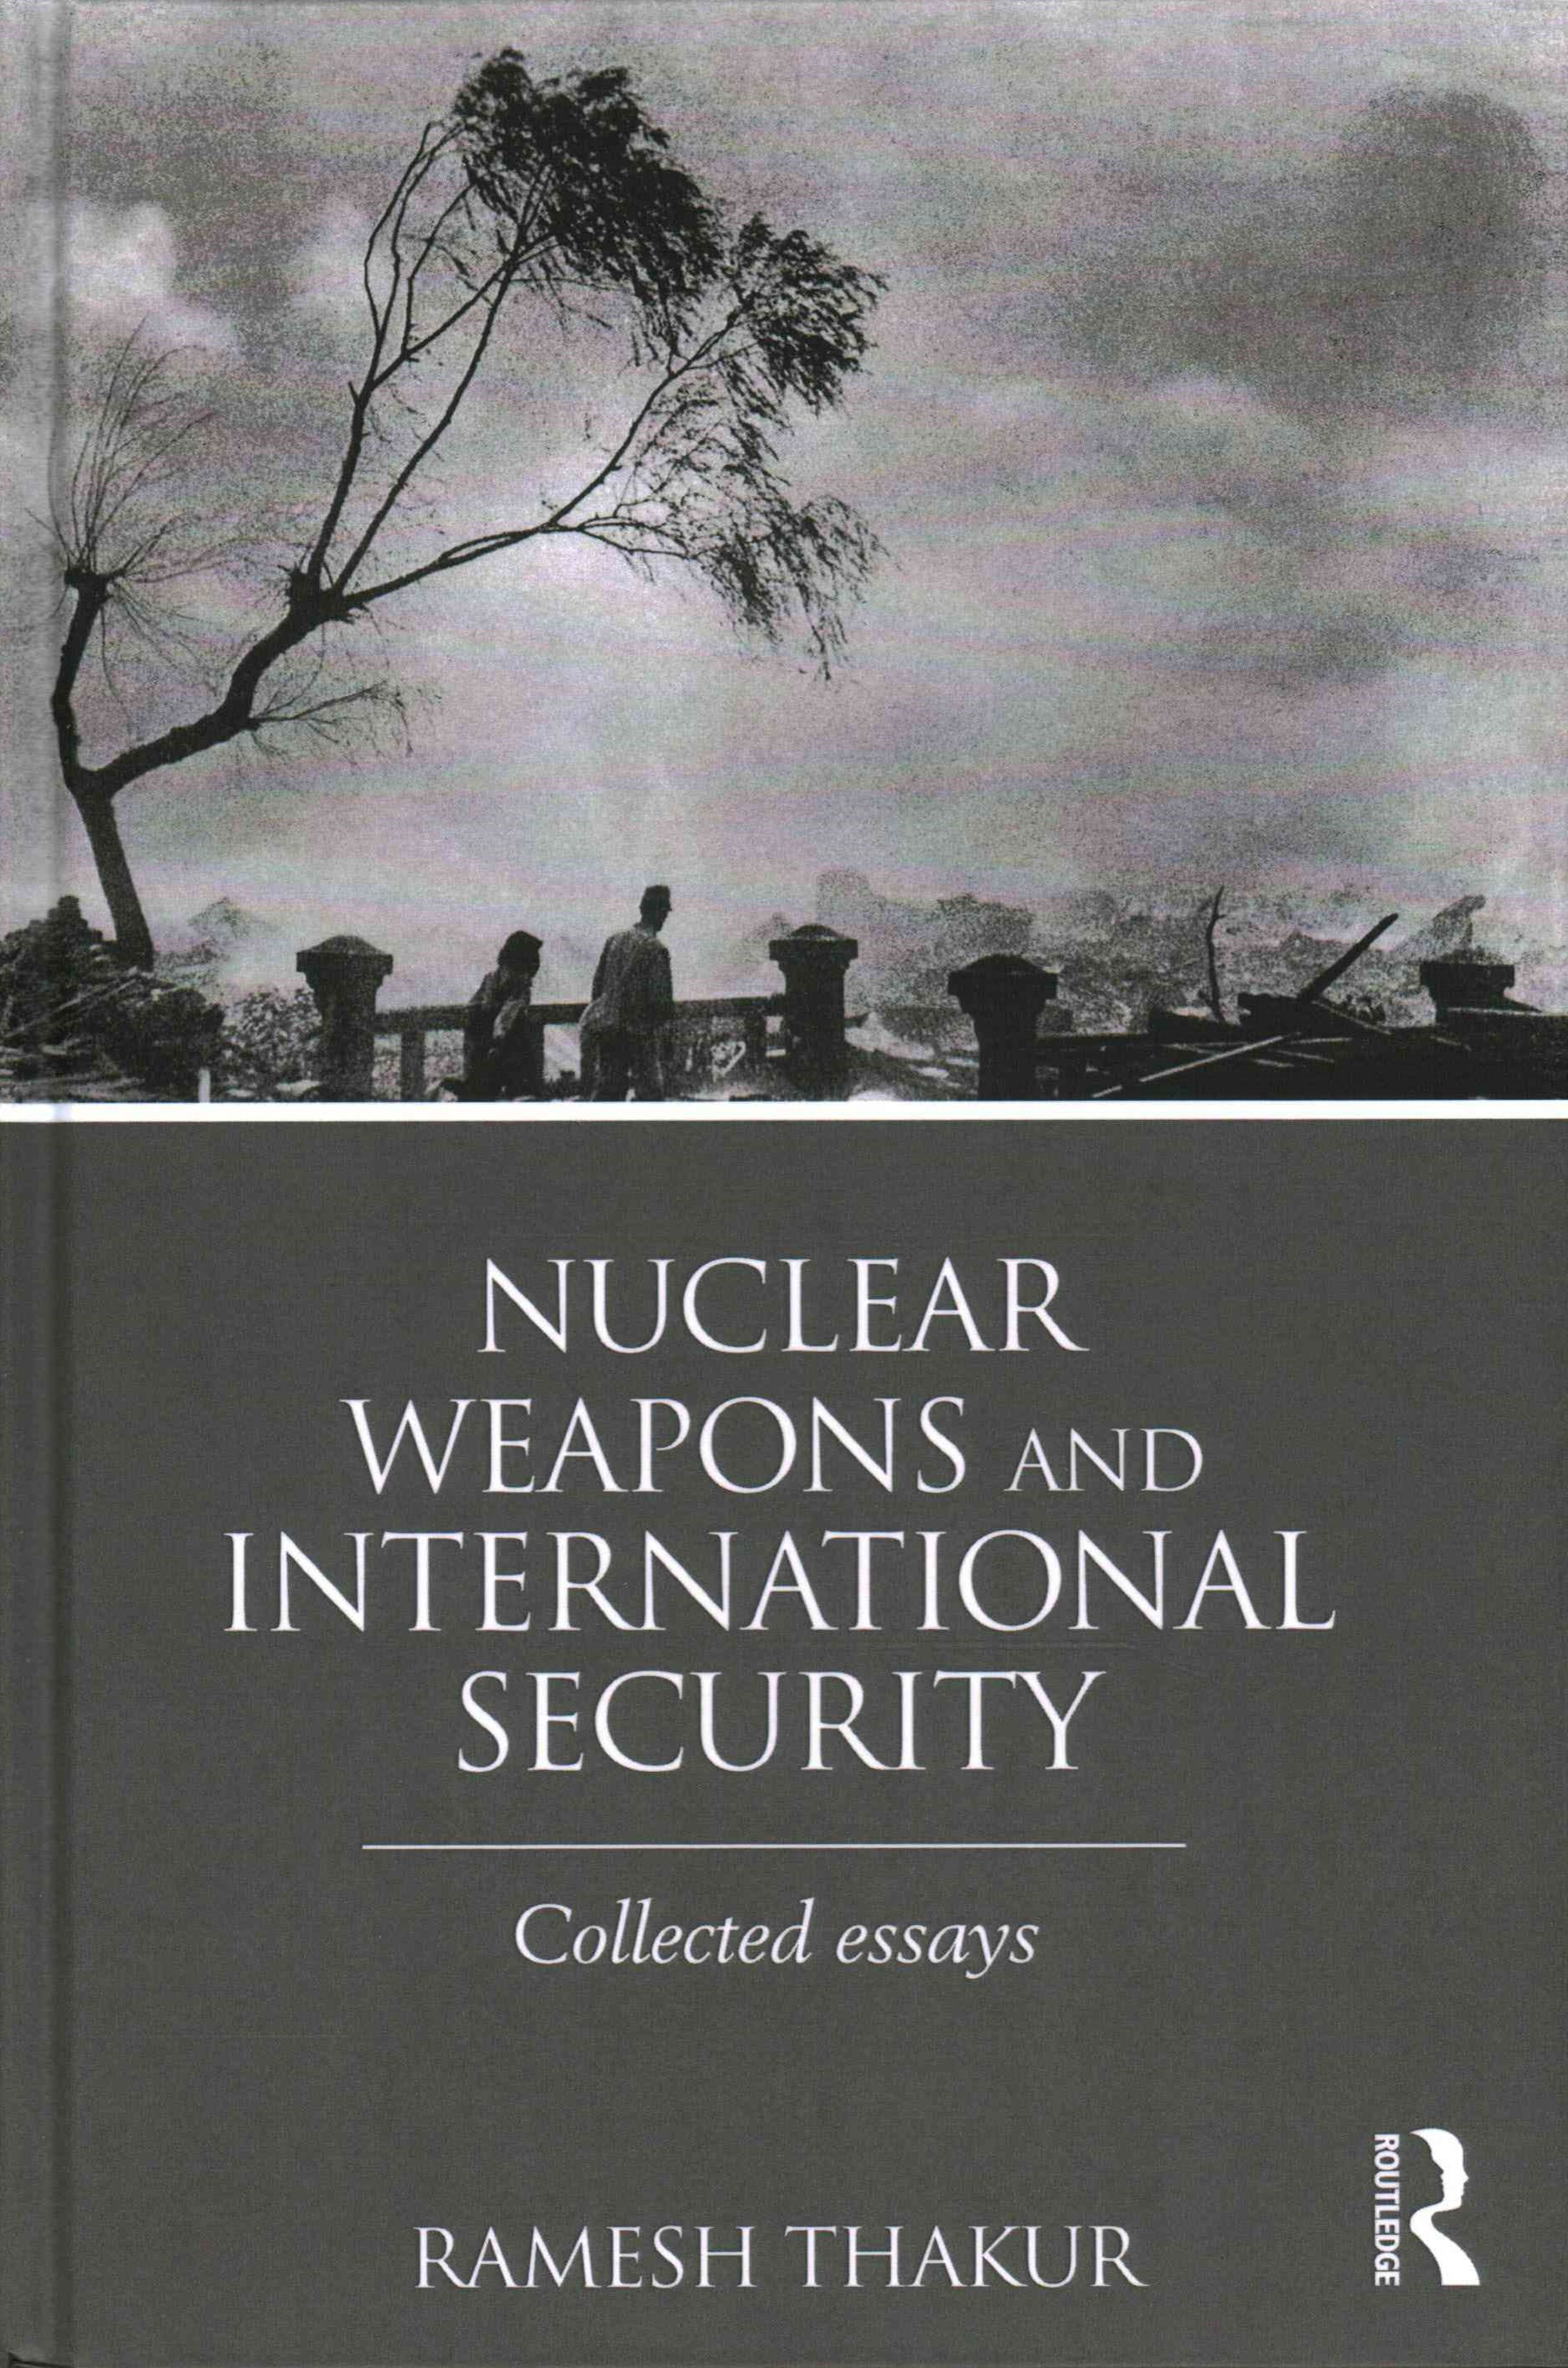 Nuclear Weapons and International Security